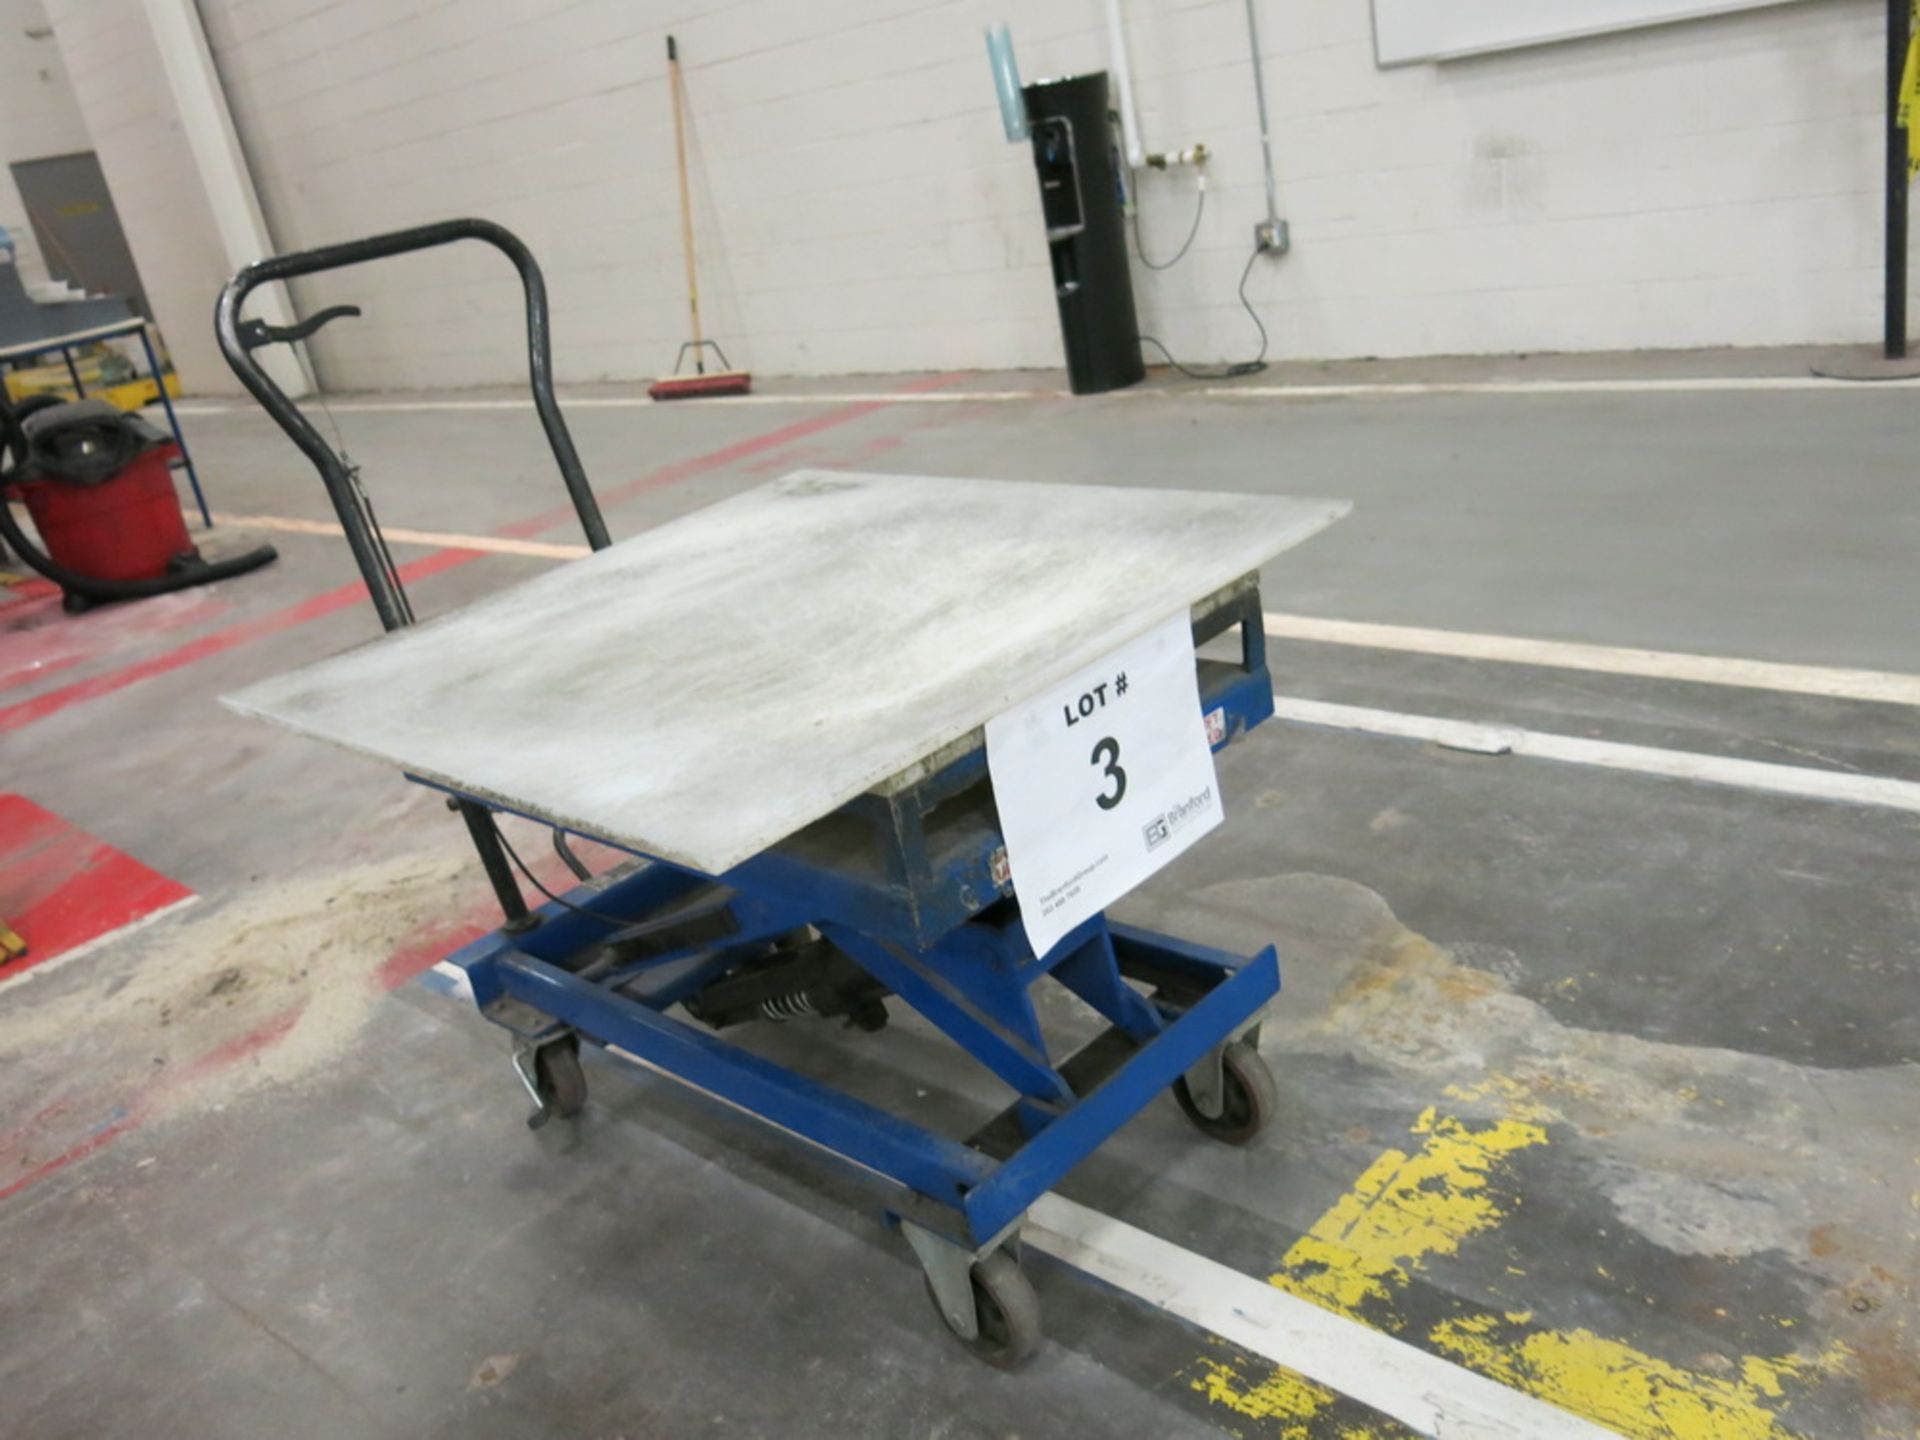 Lot 3 - Lift Table, 1100 lb Cap. Hydraulic Die Lift Cart w/ Polypropylene Top